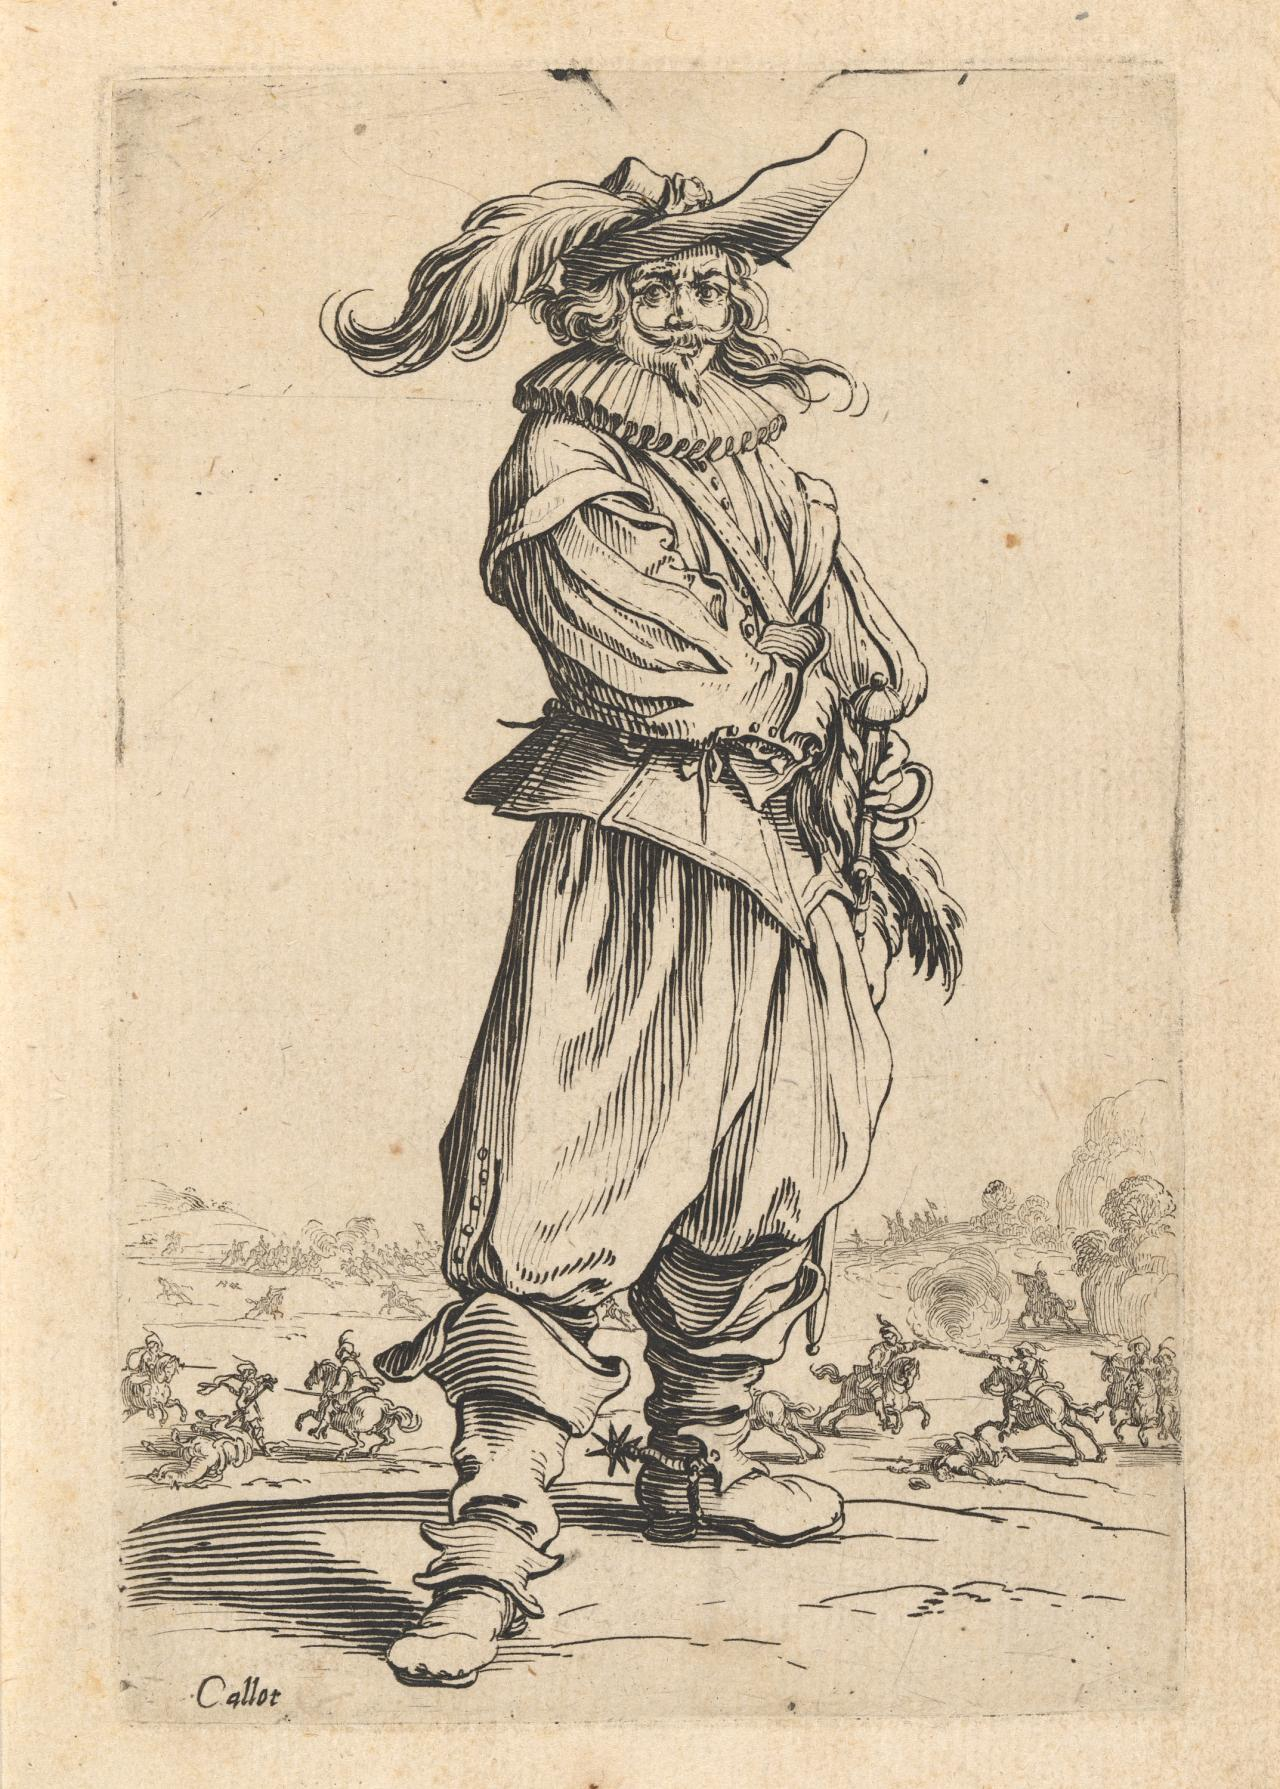 Soldier with feathered hat